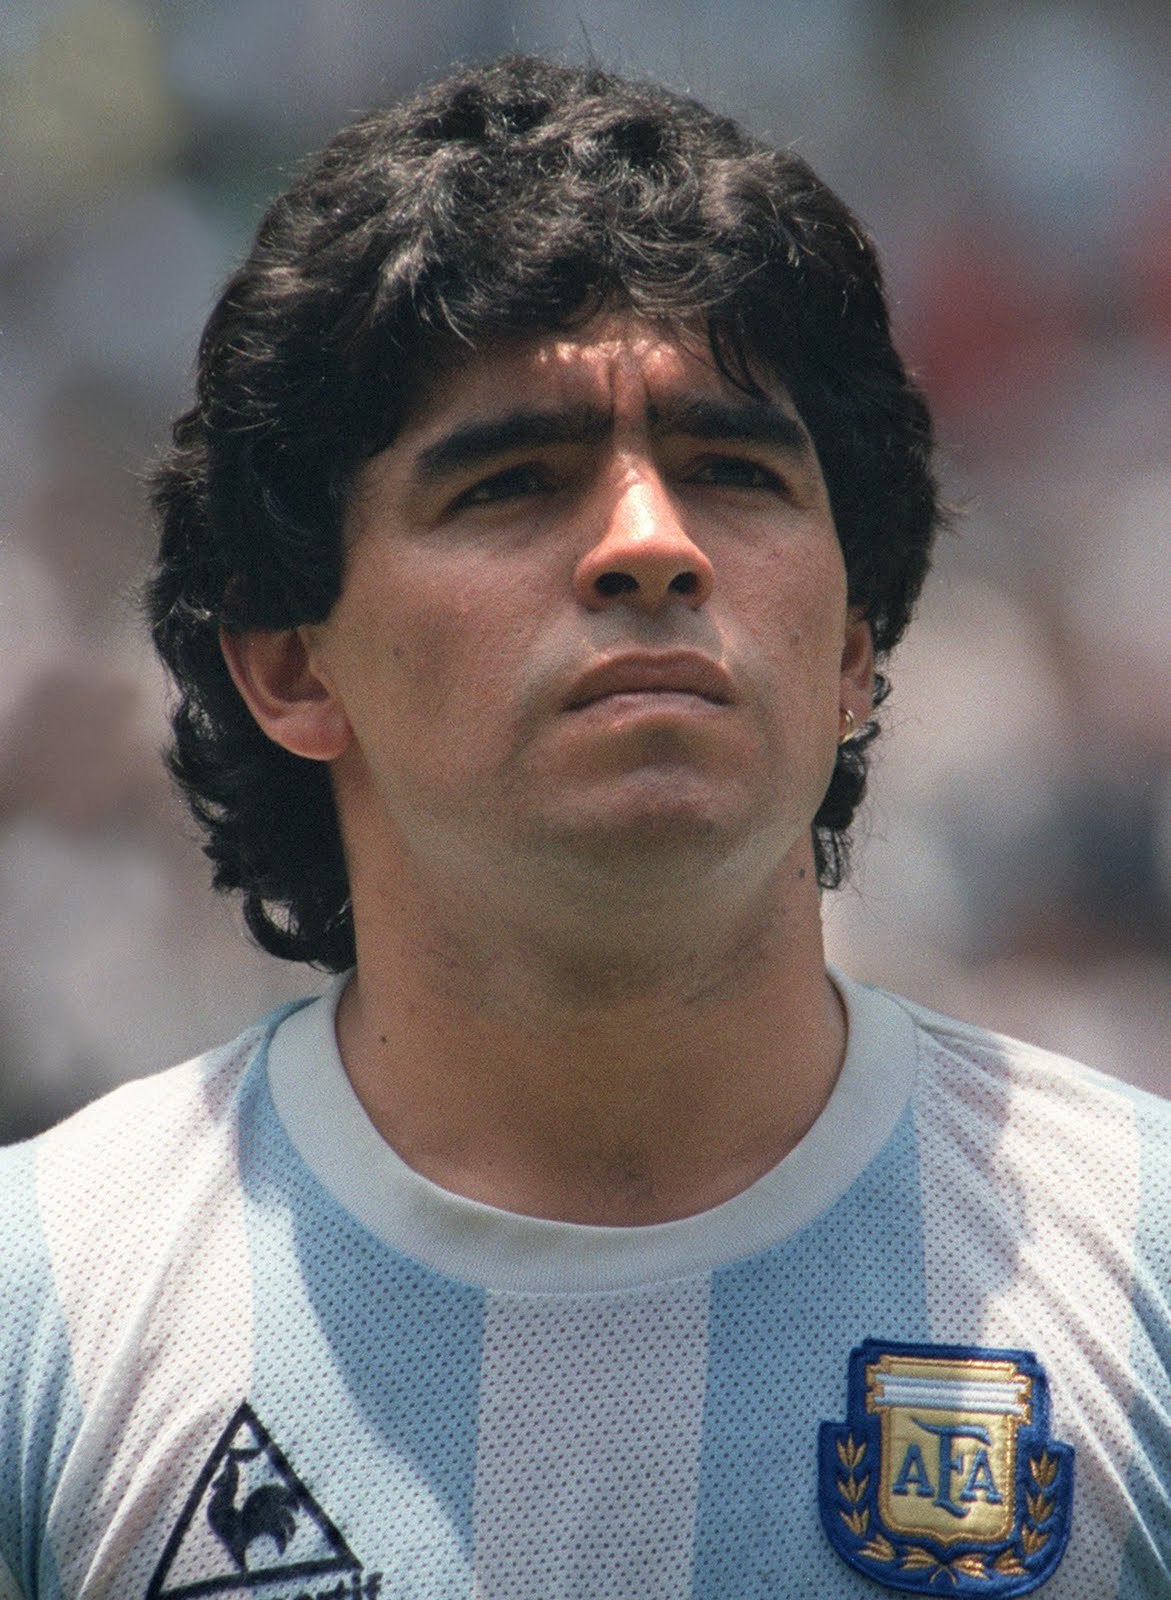 How tall is Diego Maradona?